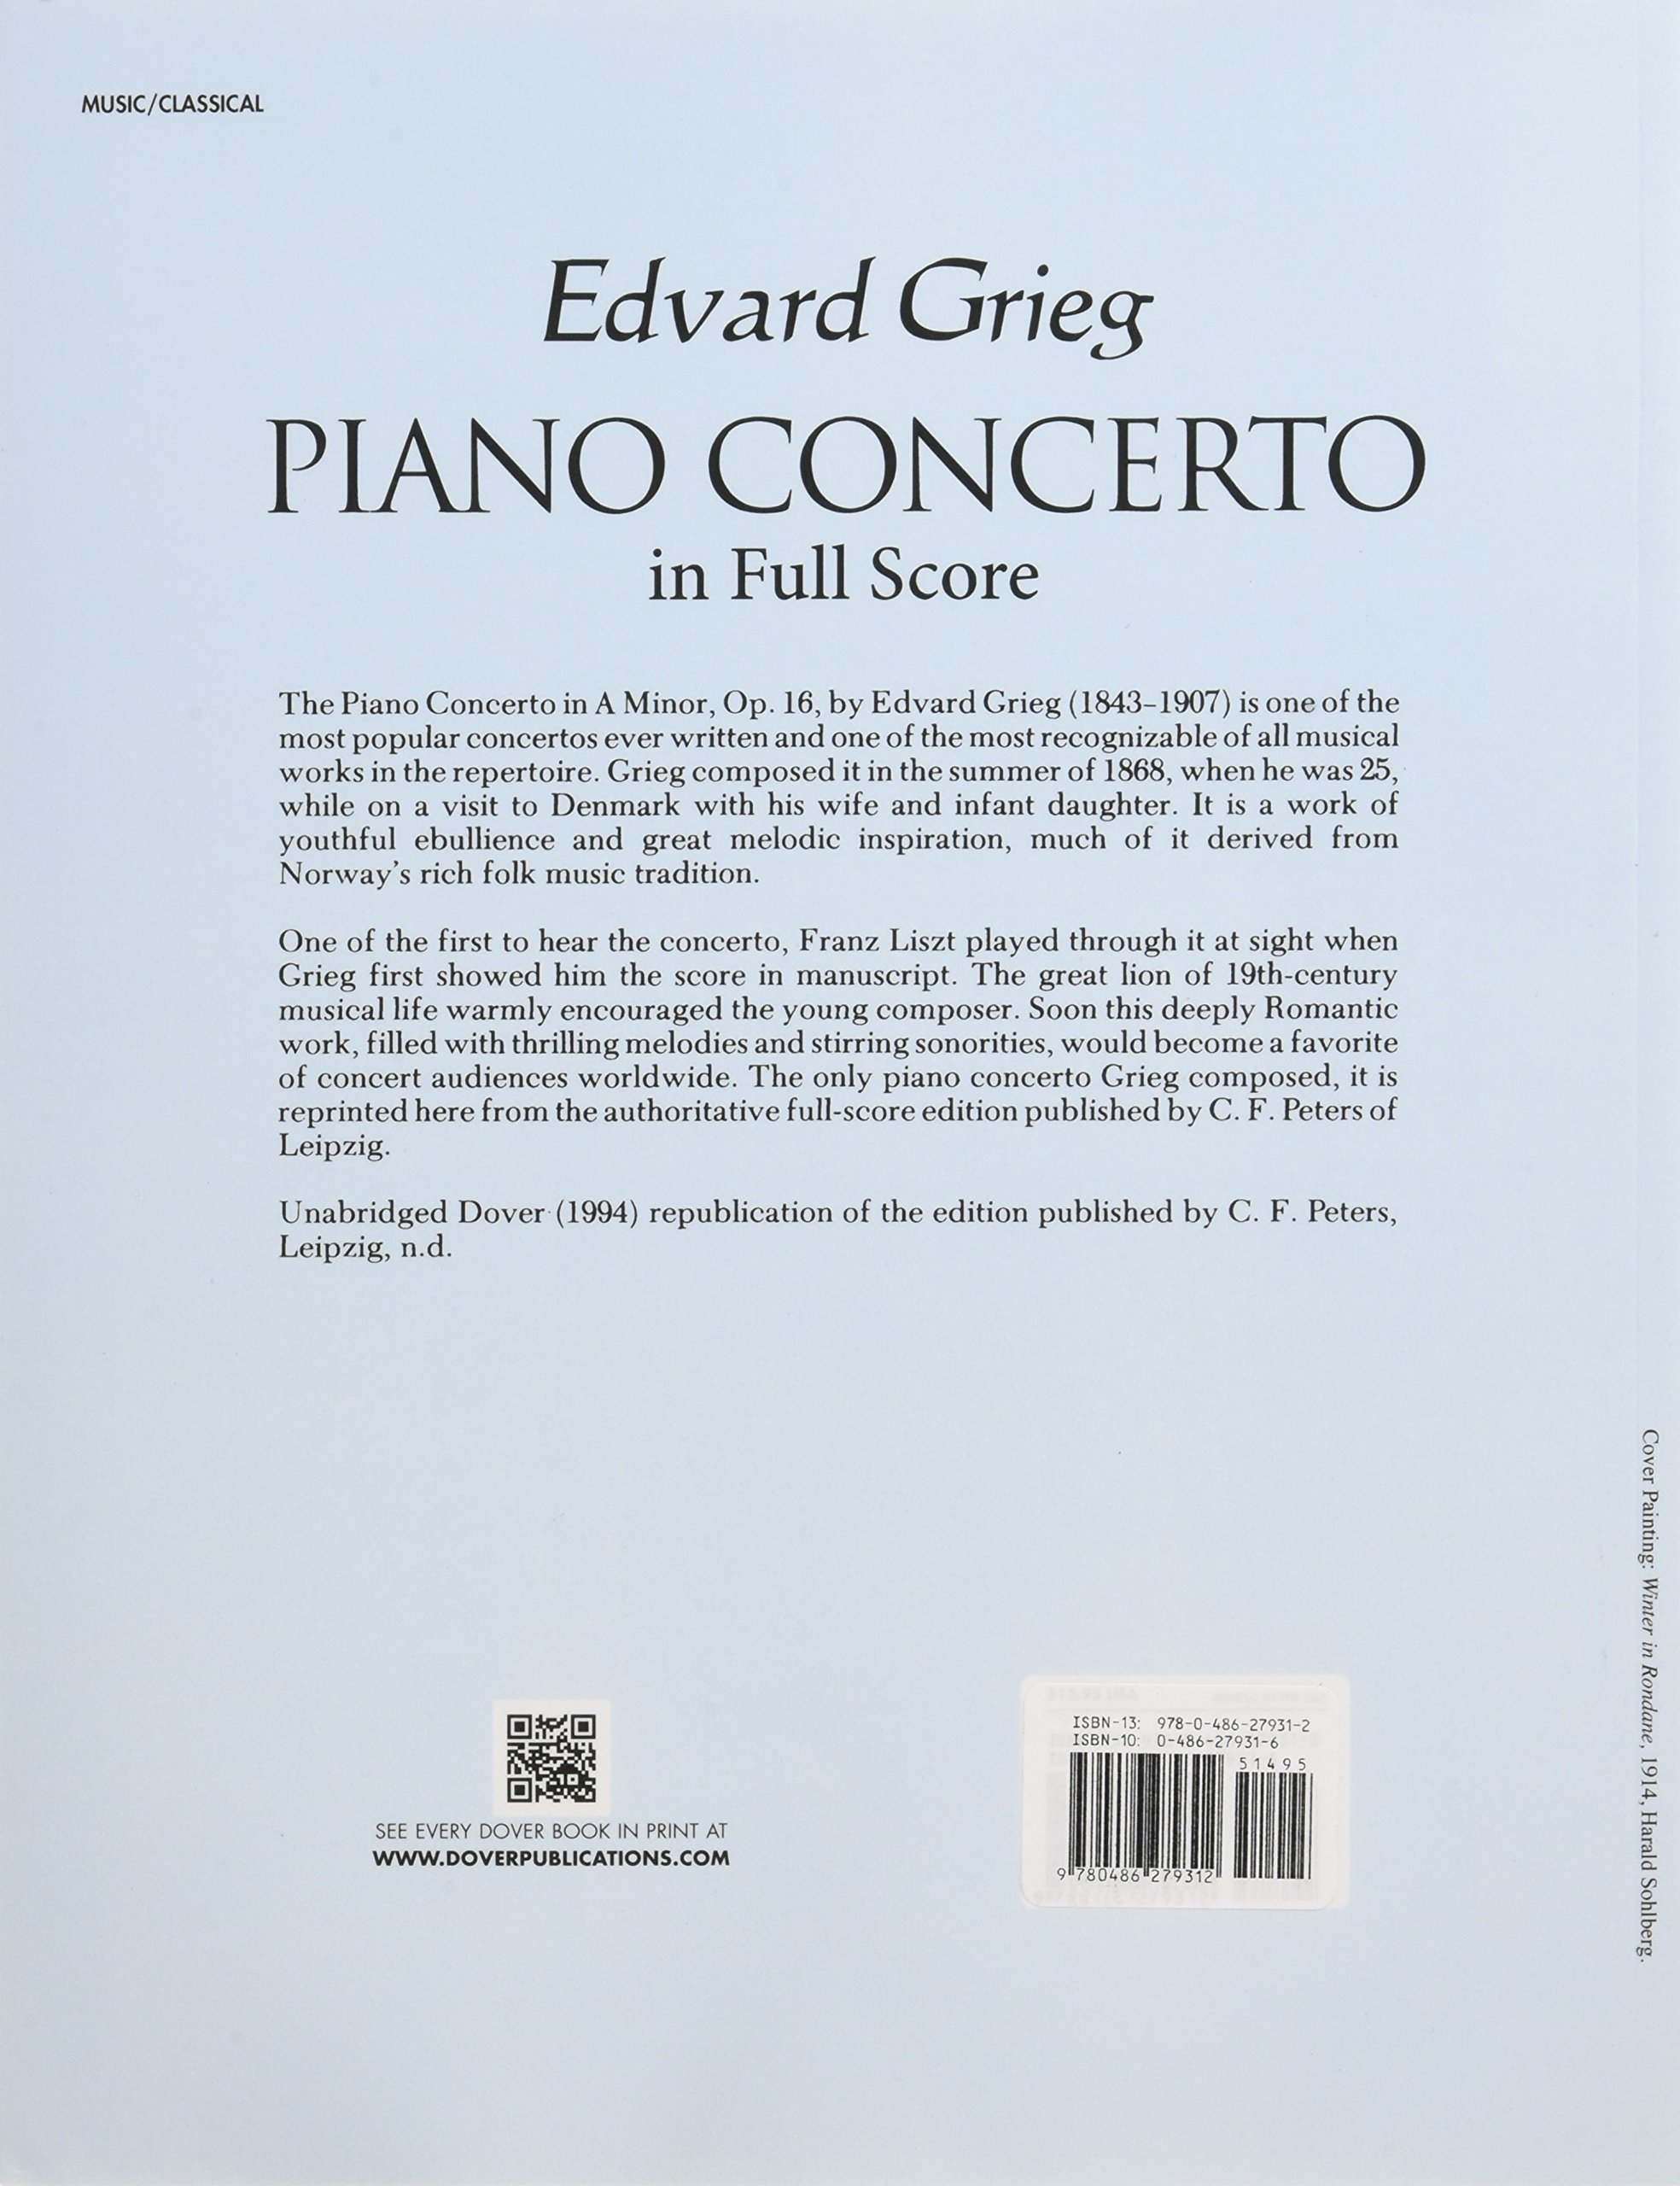 Piano Concerto in Full Score (Dover Music Scores): Edvard Grieg:  9780486279312: Amazon.com: Books